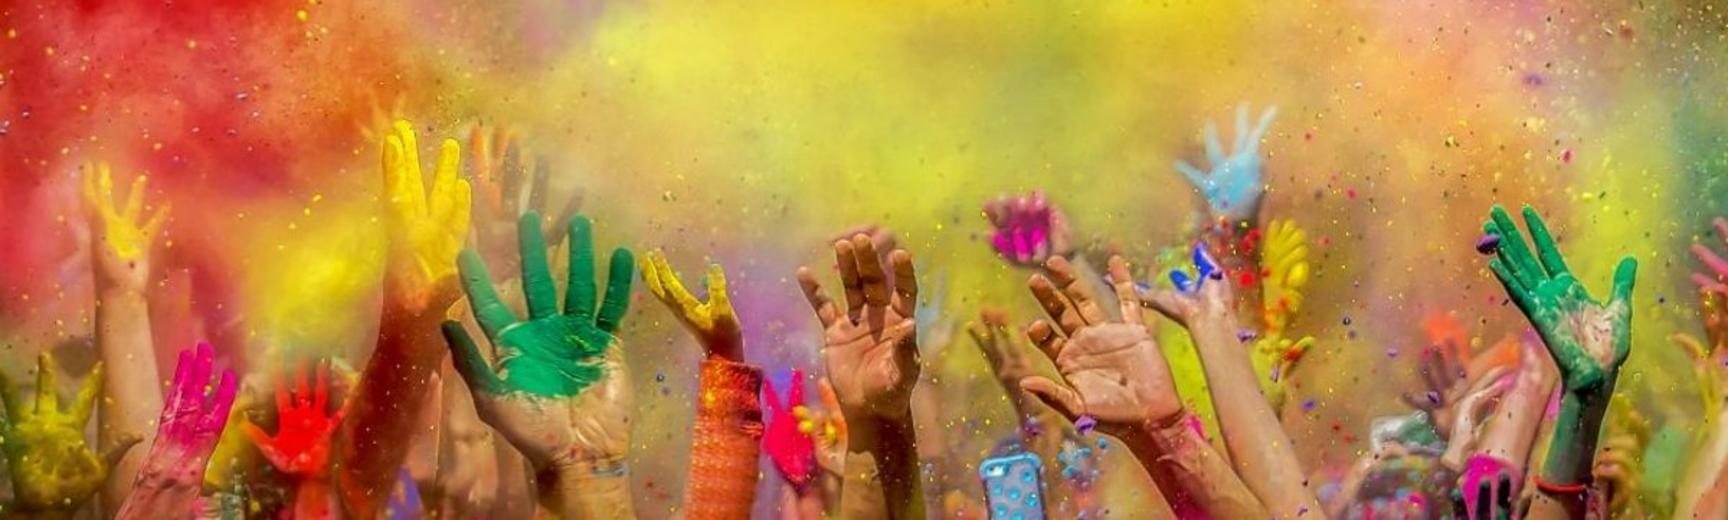 Colourful powders fill the air, and hands covered in powder and paint reach upwards, as part of Holi celebrations